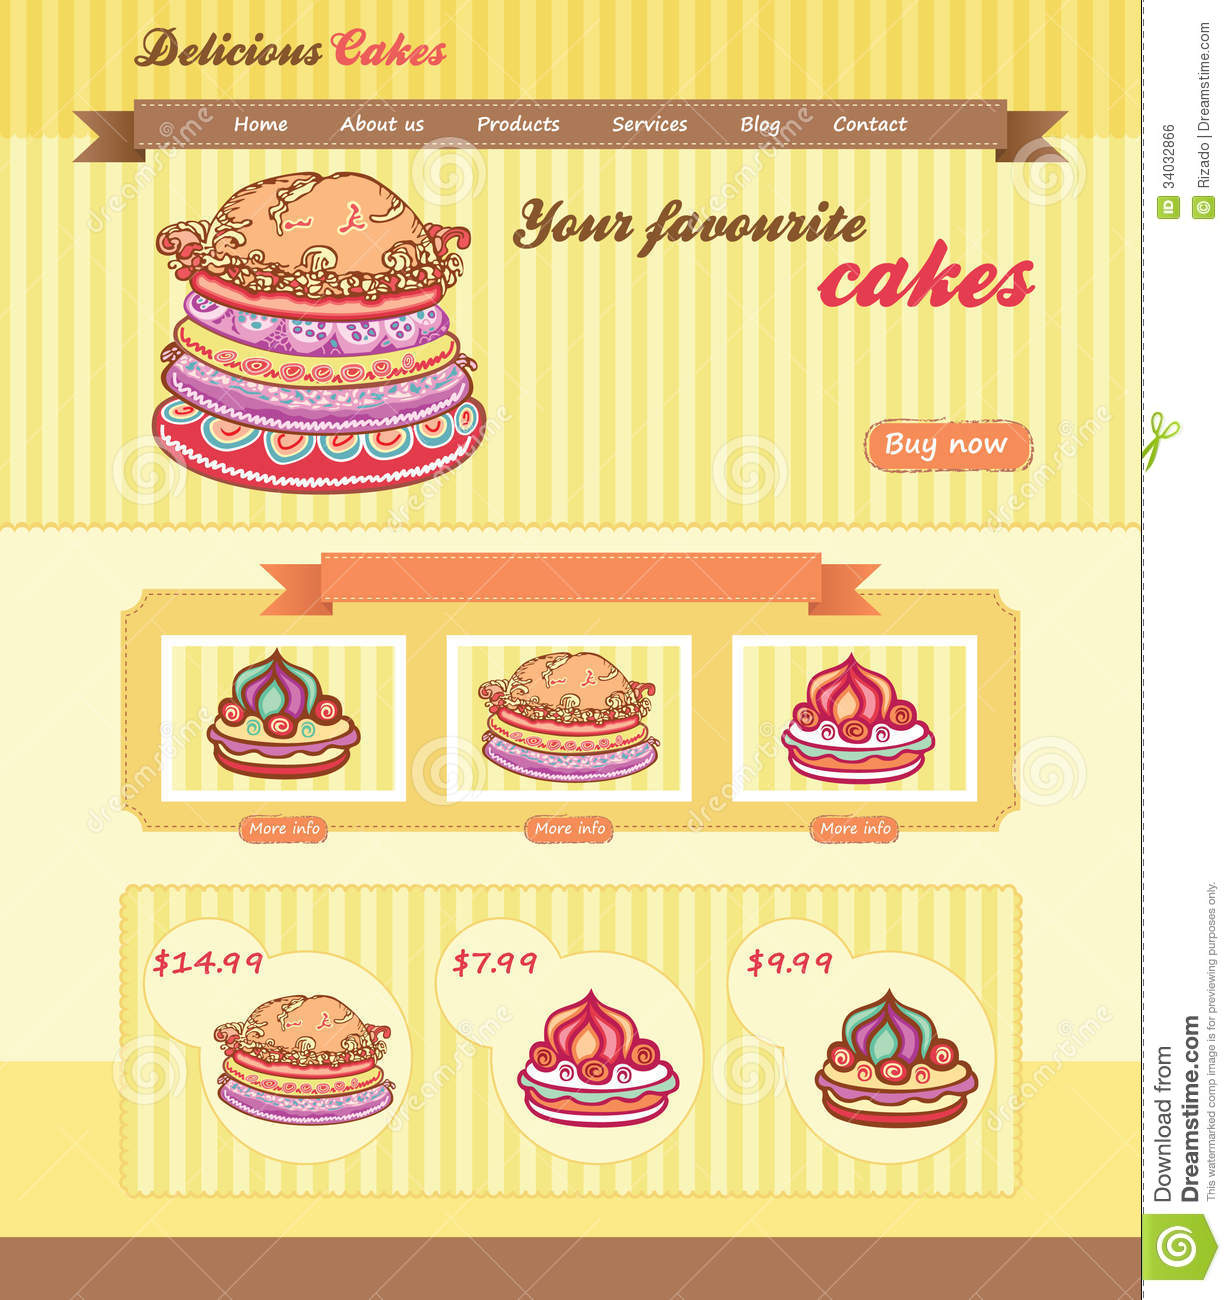 Template For Cake Design : Cake Shop Template Royalty Free Stock Image - Image: 34032866